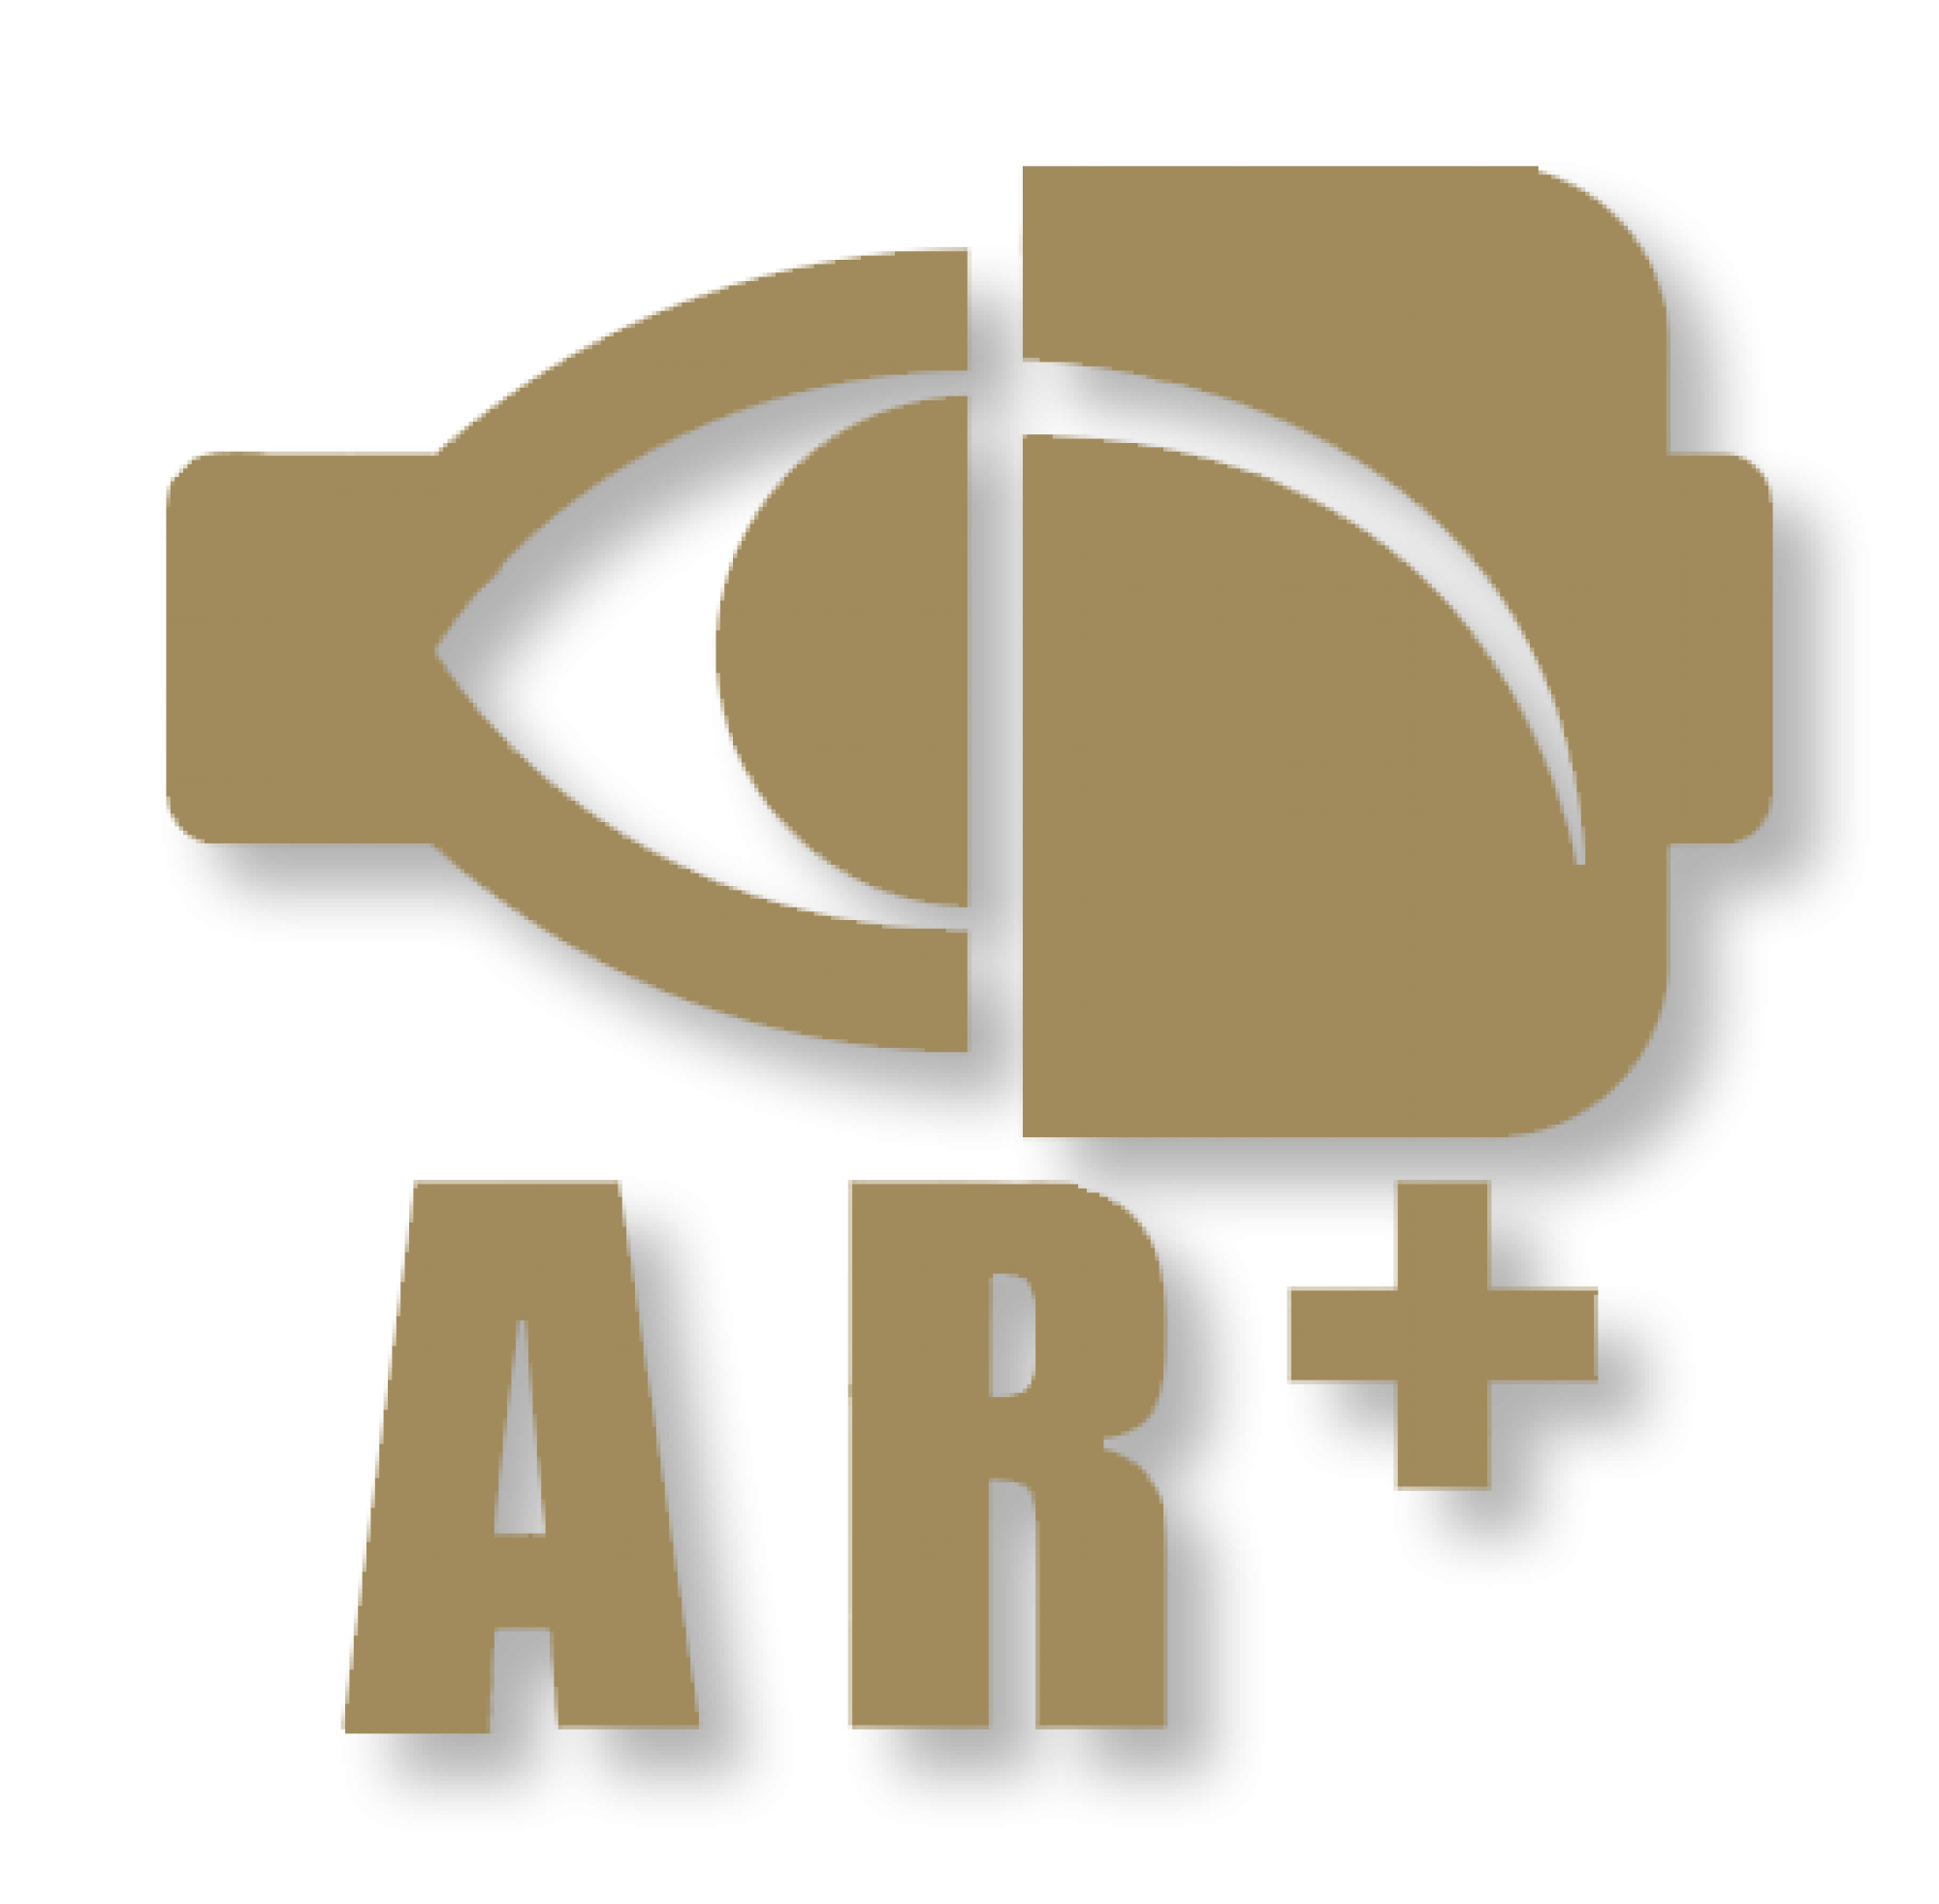 190116 AR - AUGMENTED REALITY - SOMBRA - LOGO